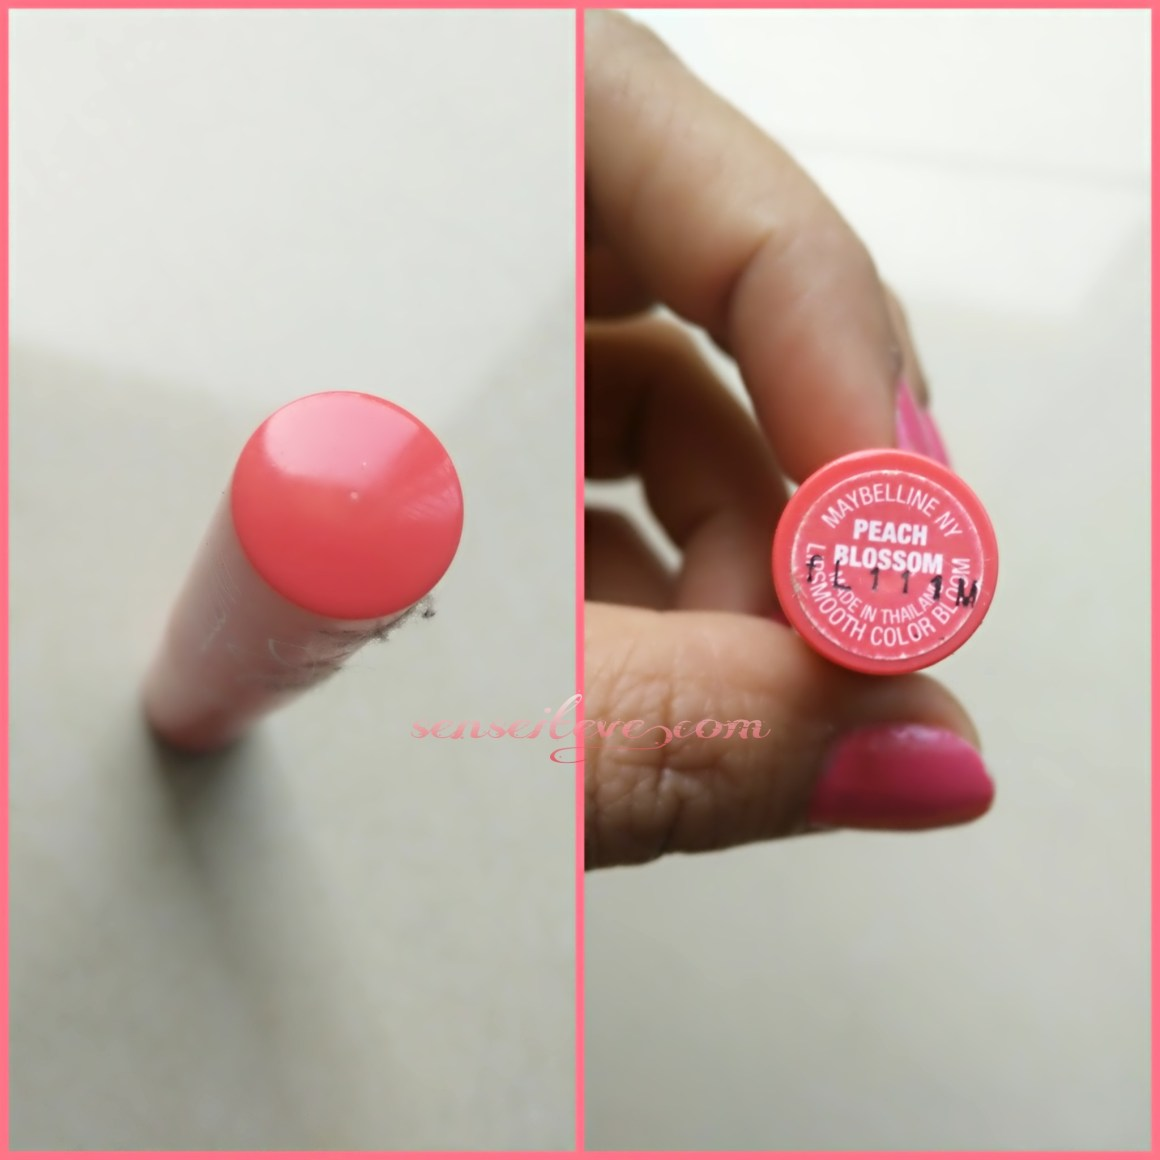 Maybelline Color Bloom Peach Blossom Review